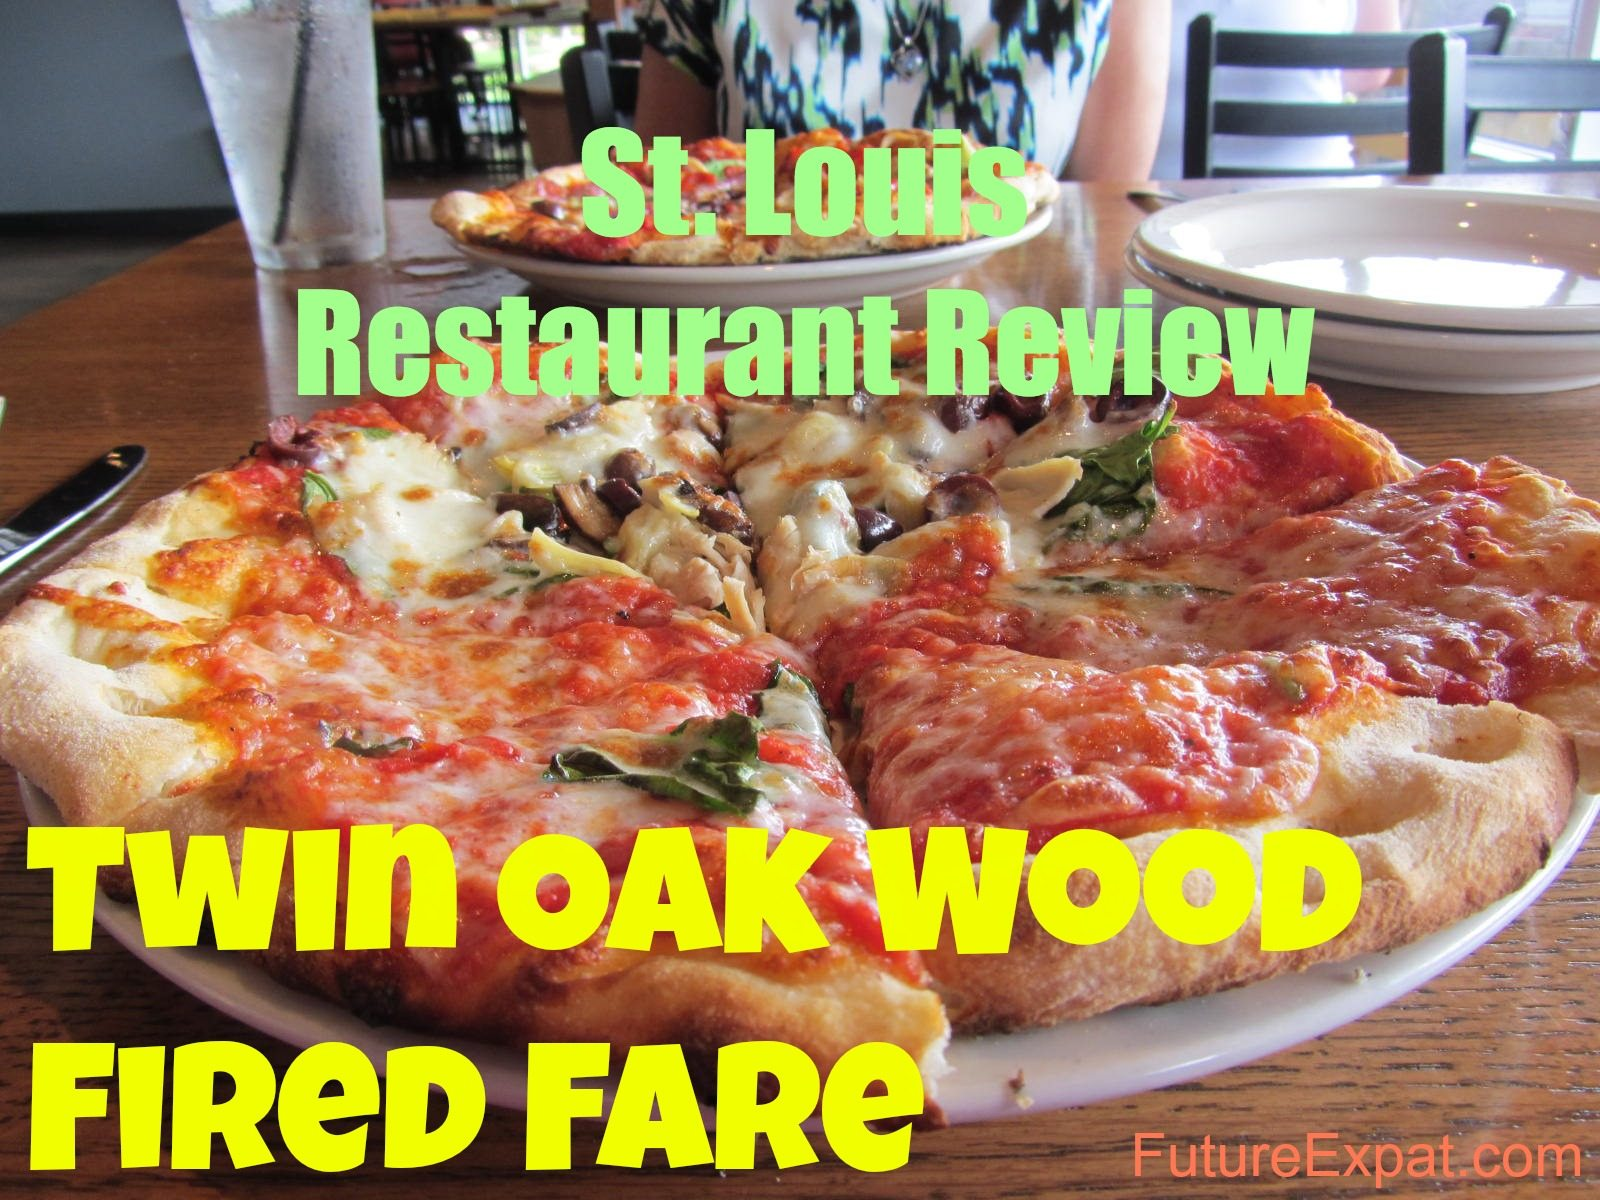 St. Louis Restaurant Review: Twin Oak Wood Fired Fare